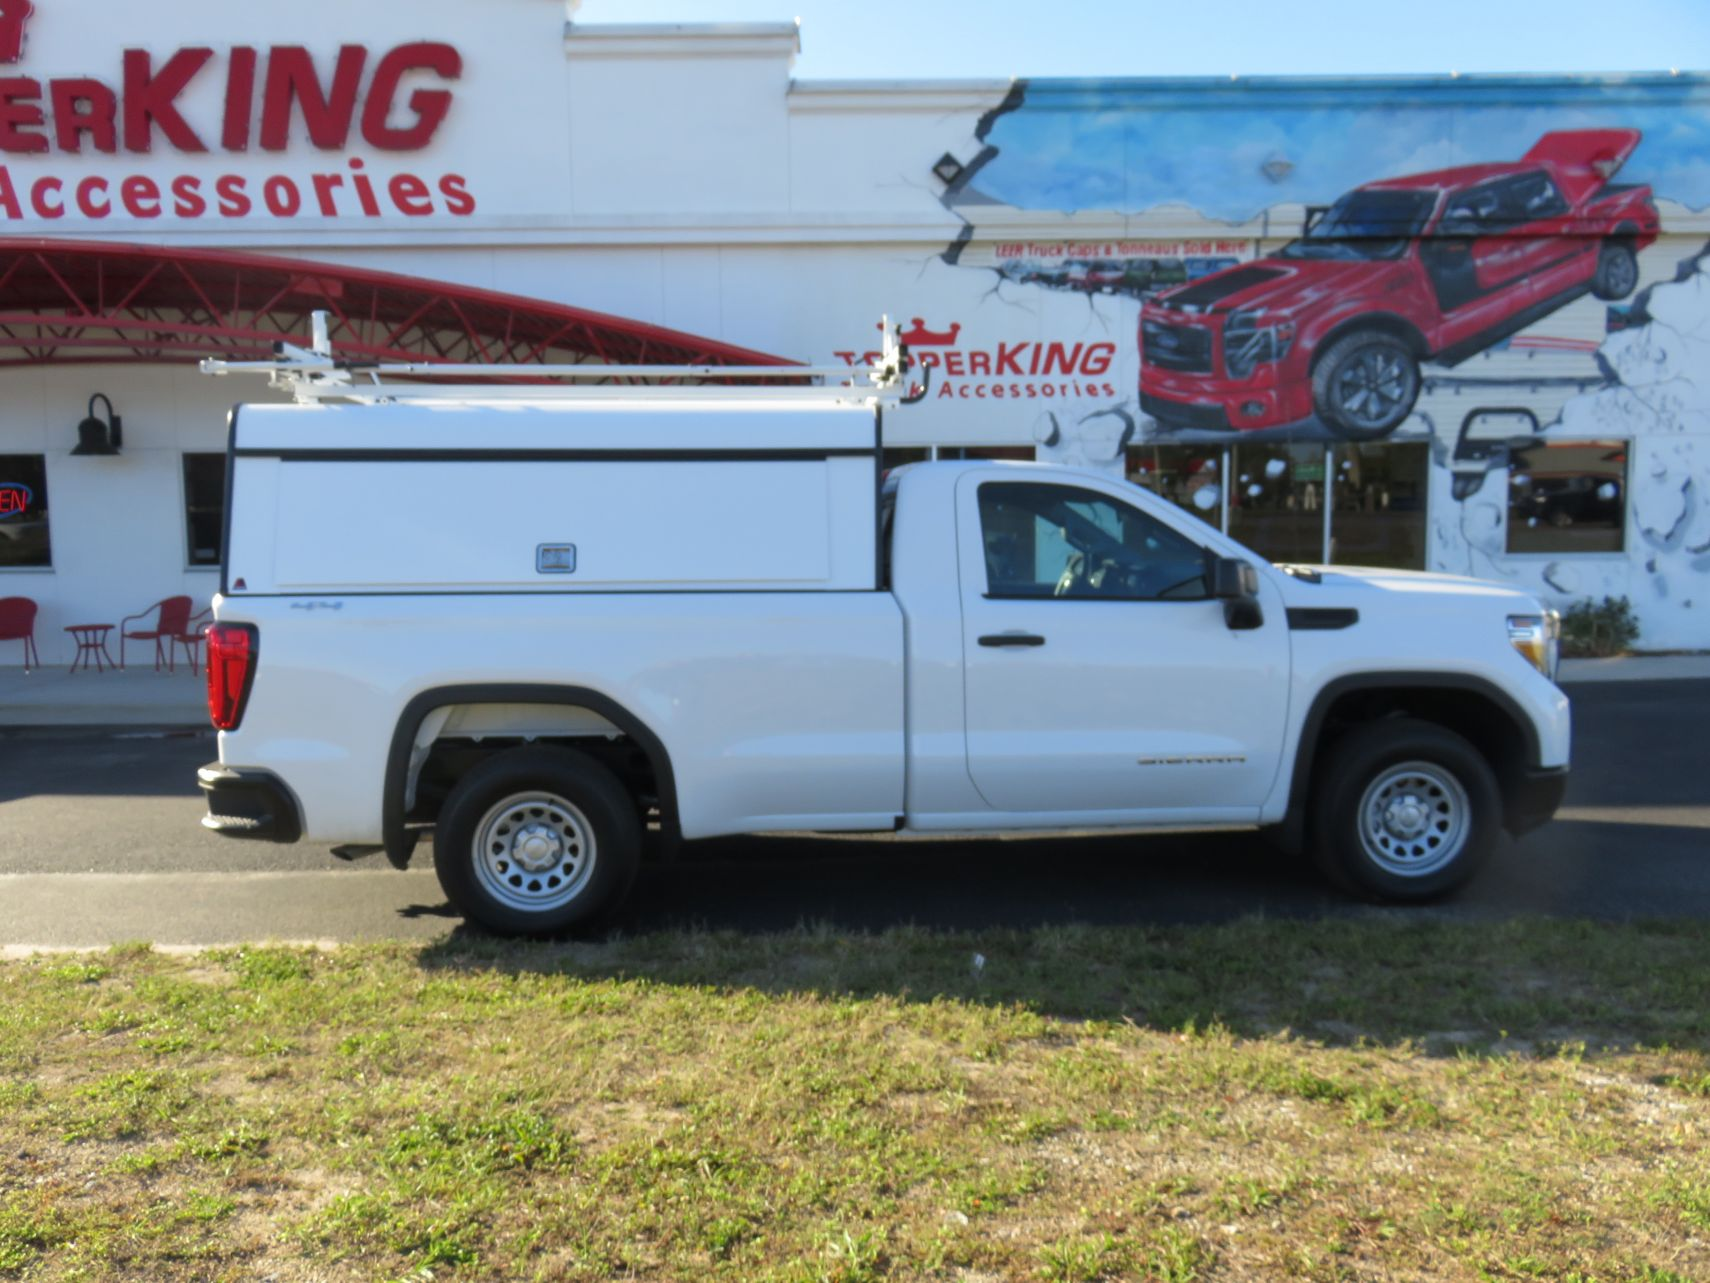 2020 White GMC Sierra with LEER DCC, Roof Racks, and Hitch by TopperKING in Brandon, FL 813-689-2449 or Clearwater, FL 727-530-9066. Call today to start!